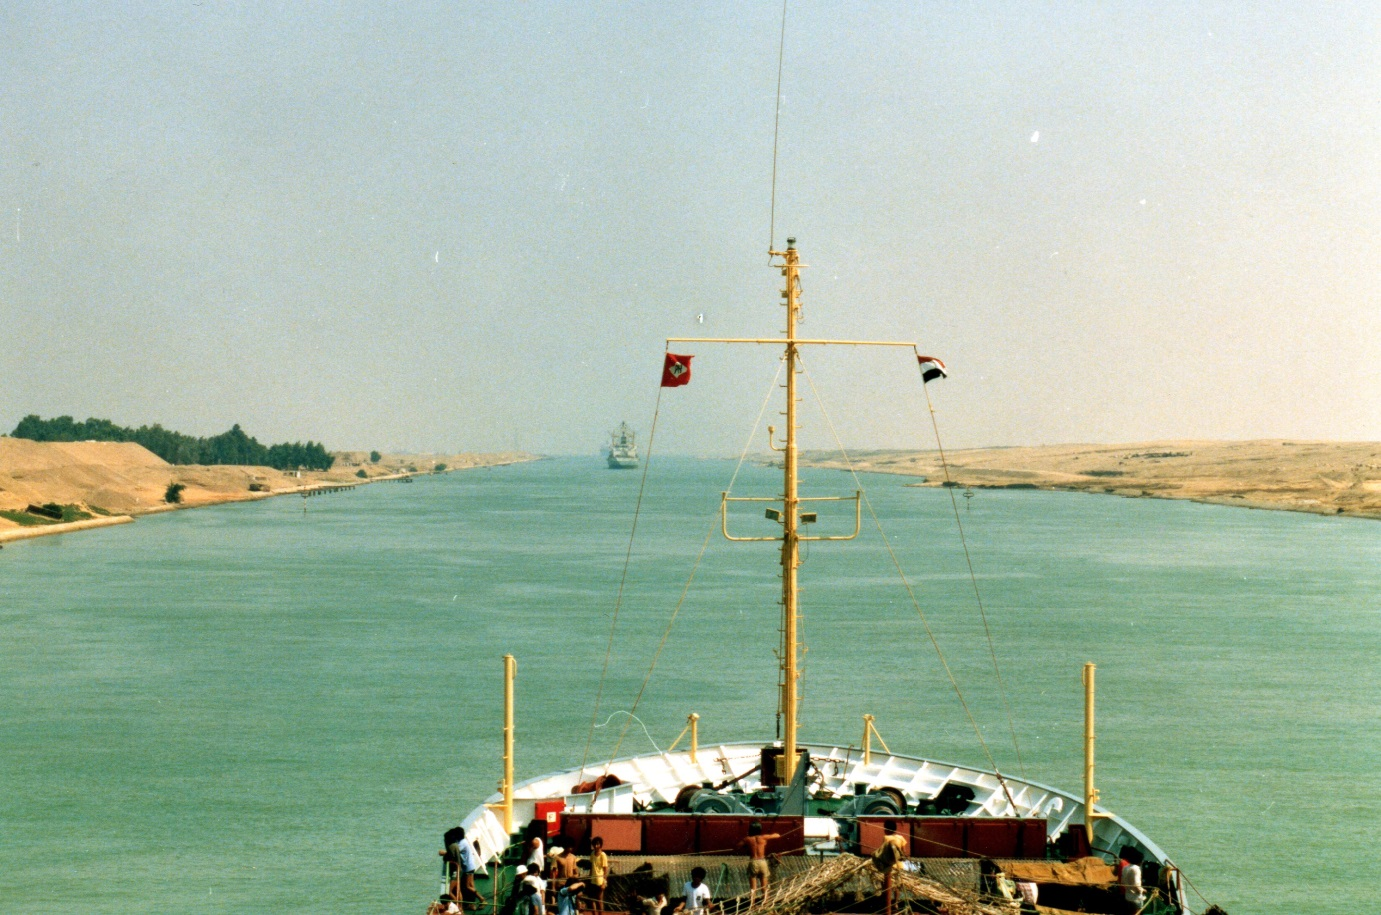 The CA II  entering the Suez Canal on its way to Hamburg.